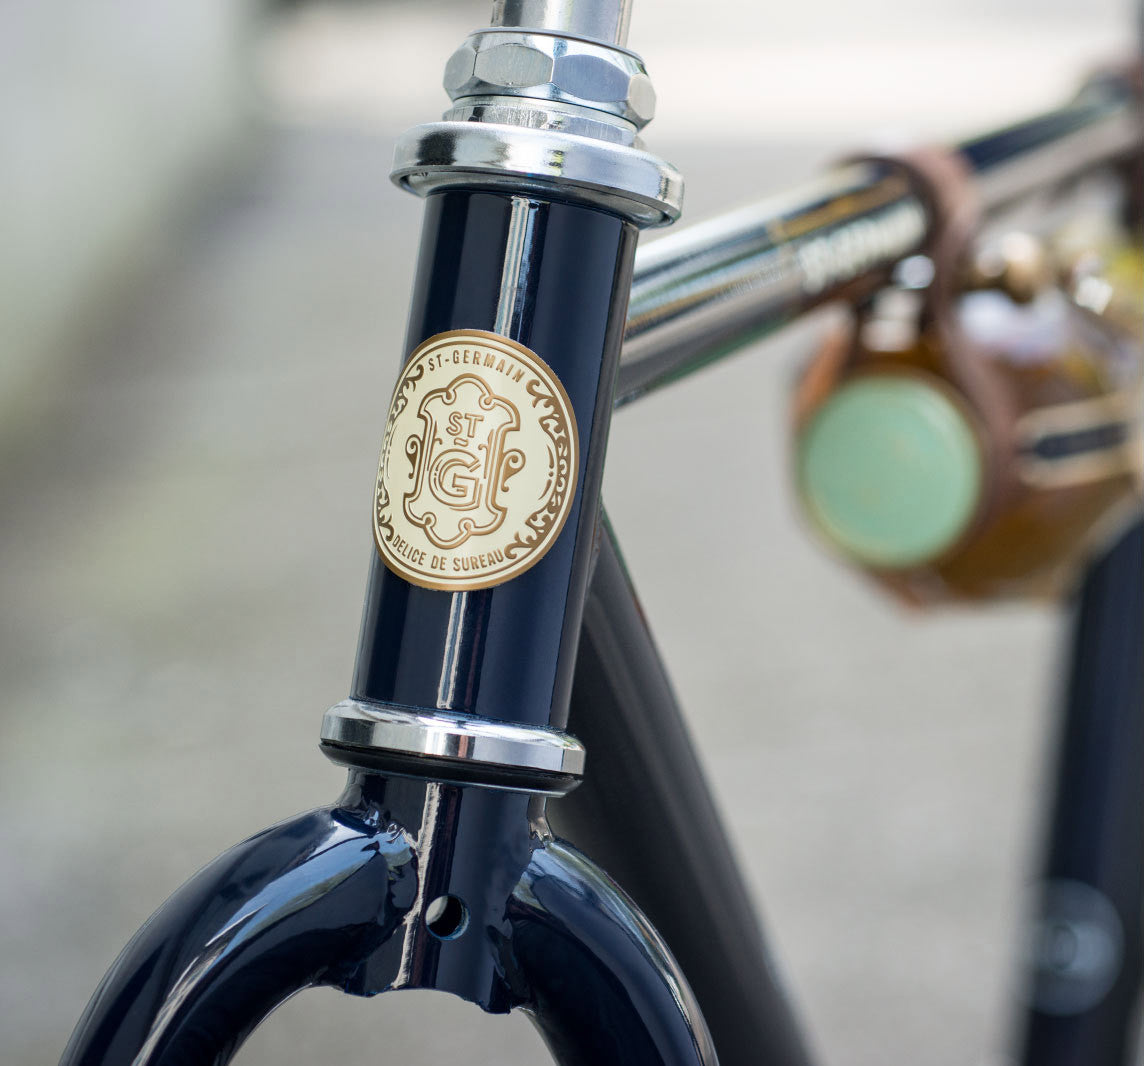 St-Germain Bicycle by Linus detail